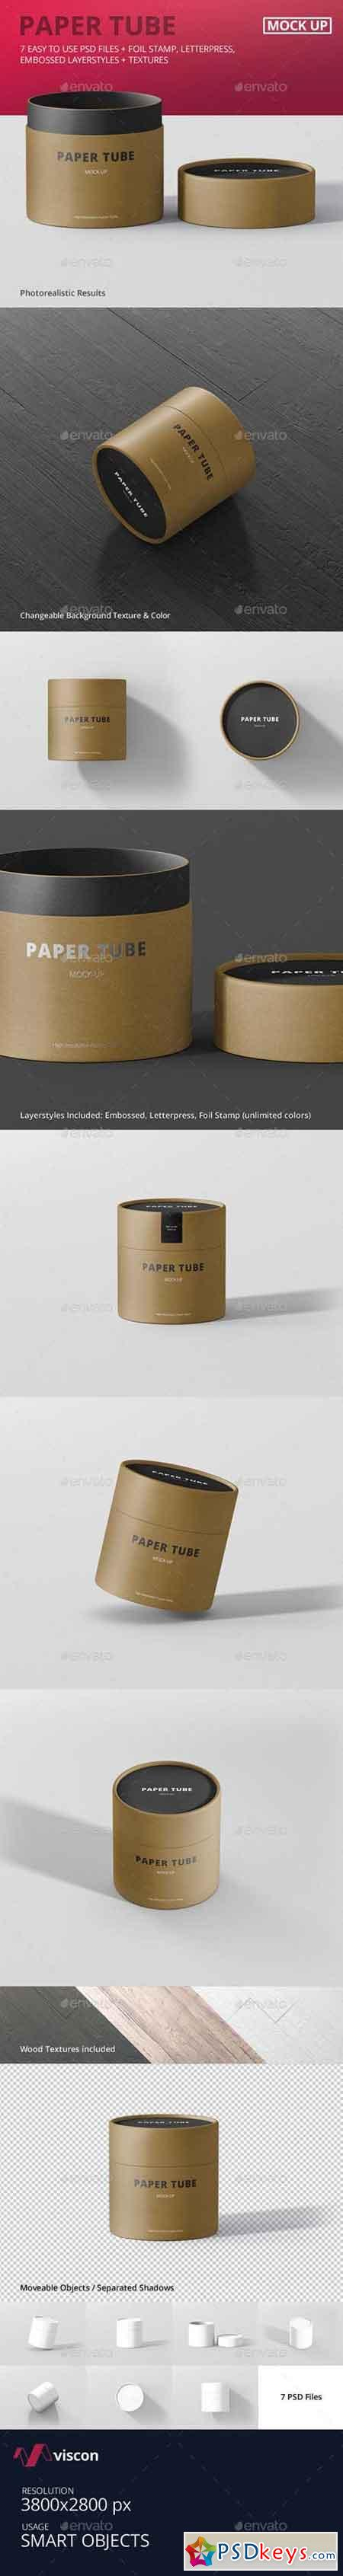 Paper Tube Packaging Mock-Up - Small 16430657